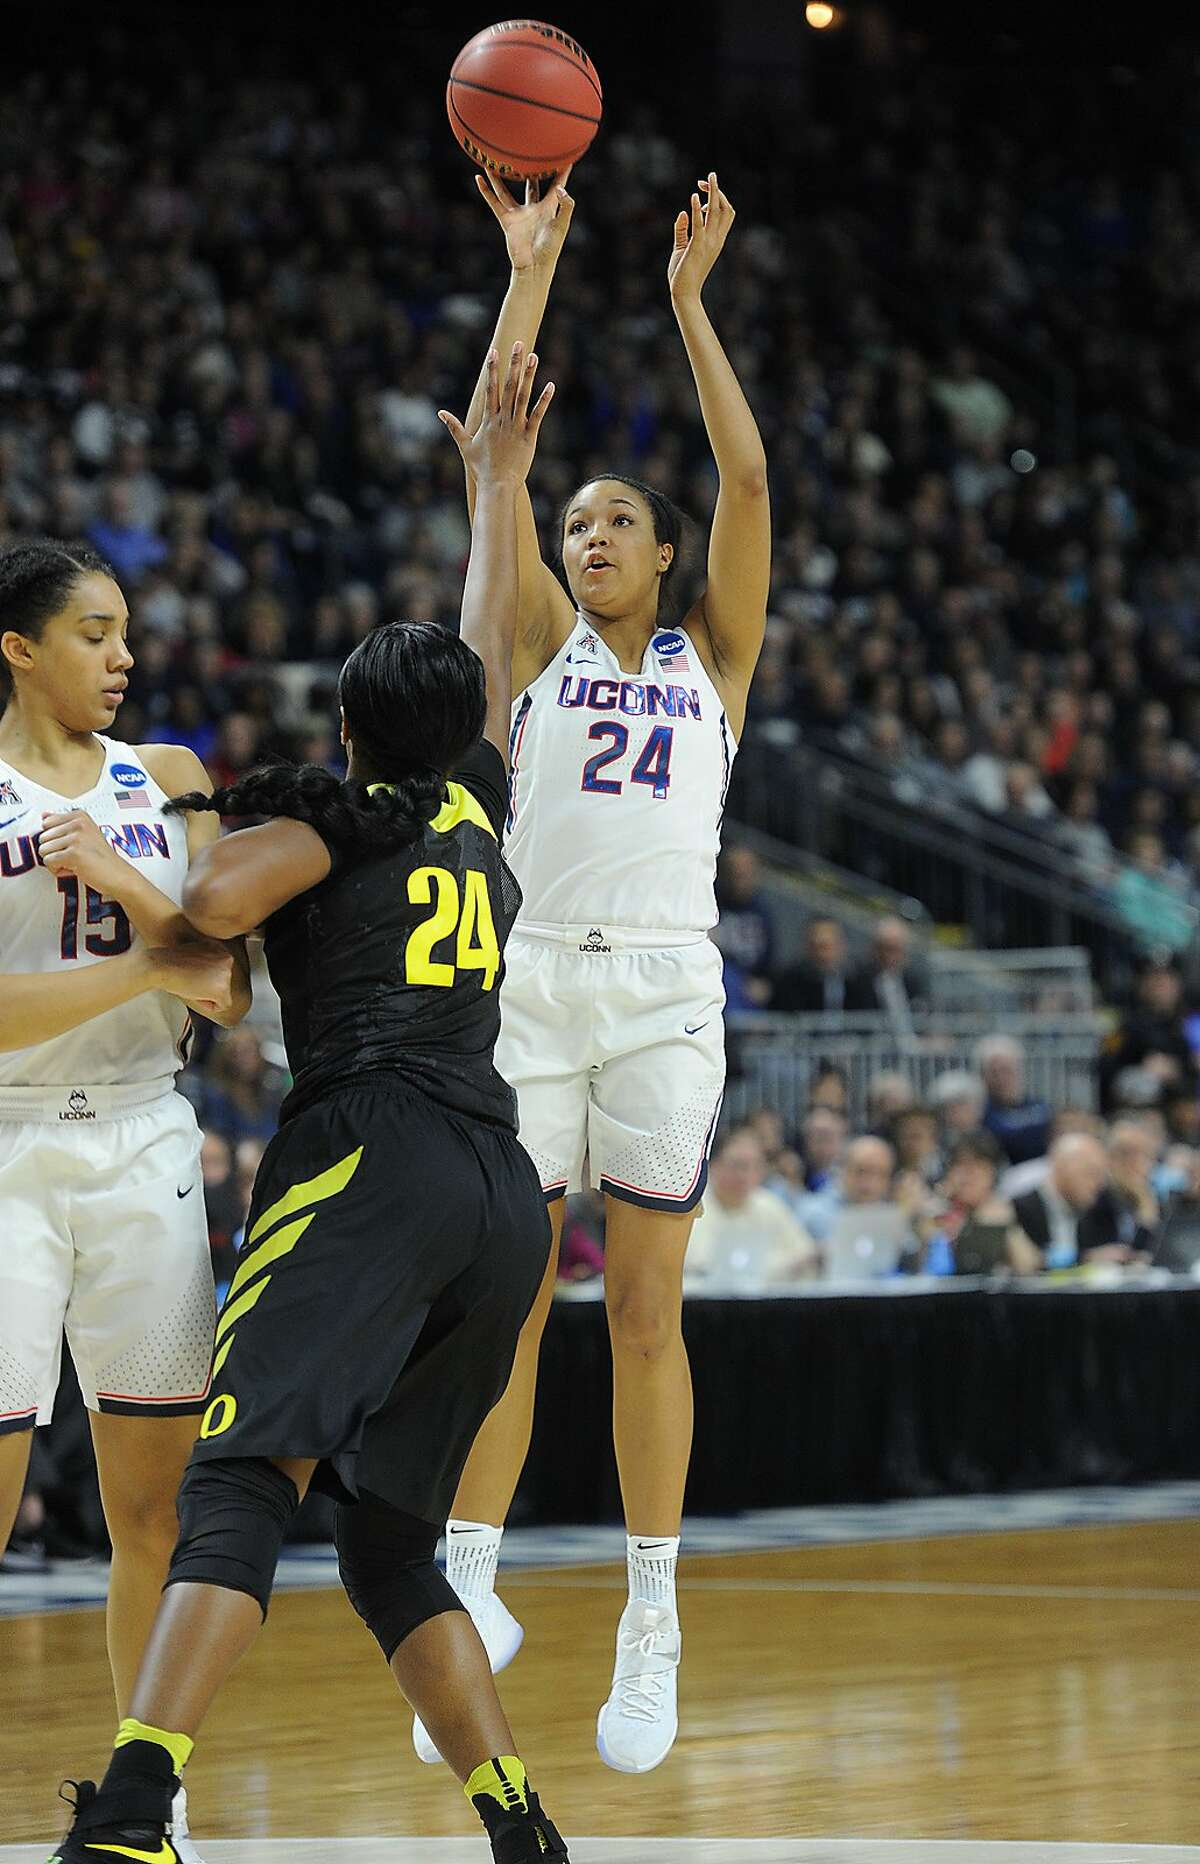 UConn defeats Oregon in the NCAA Women's Basketball Regional Final game at the Webster Bank Arena in Bridgeport, Conn. on Monday, March 27, 2017.